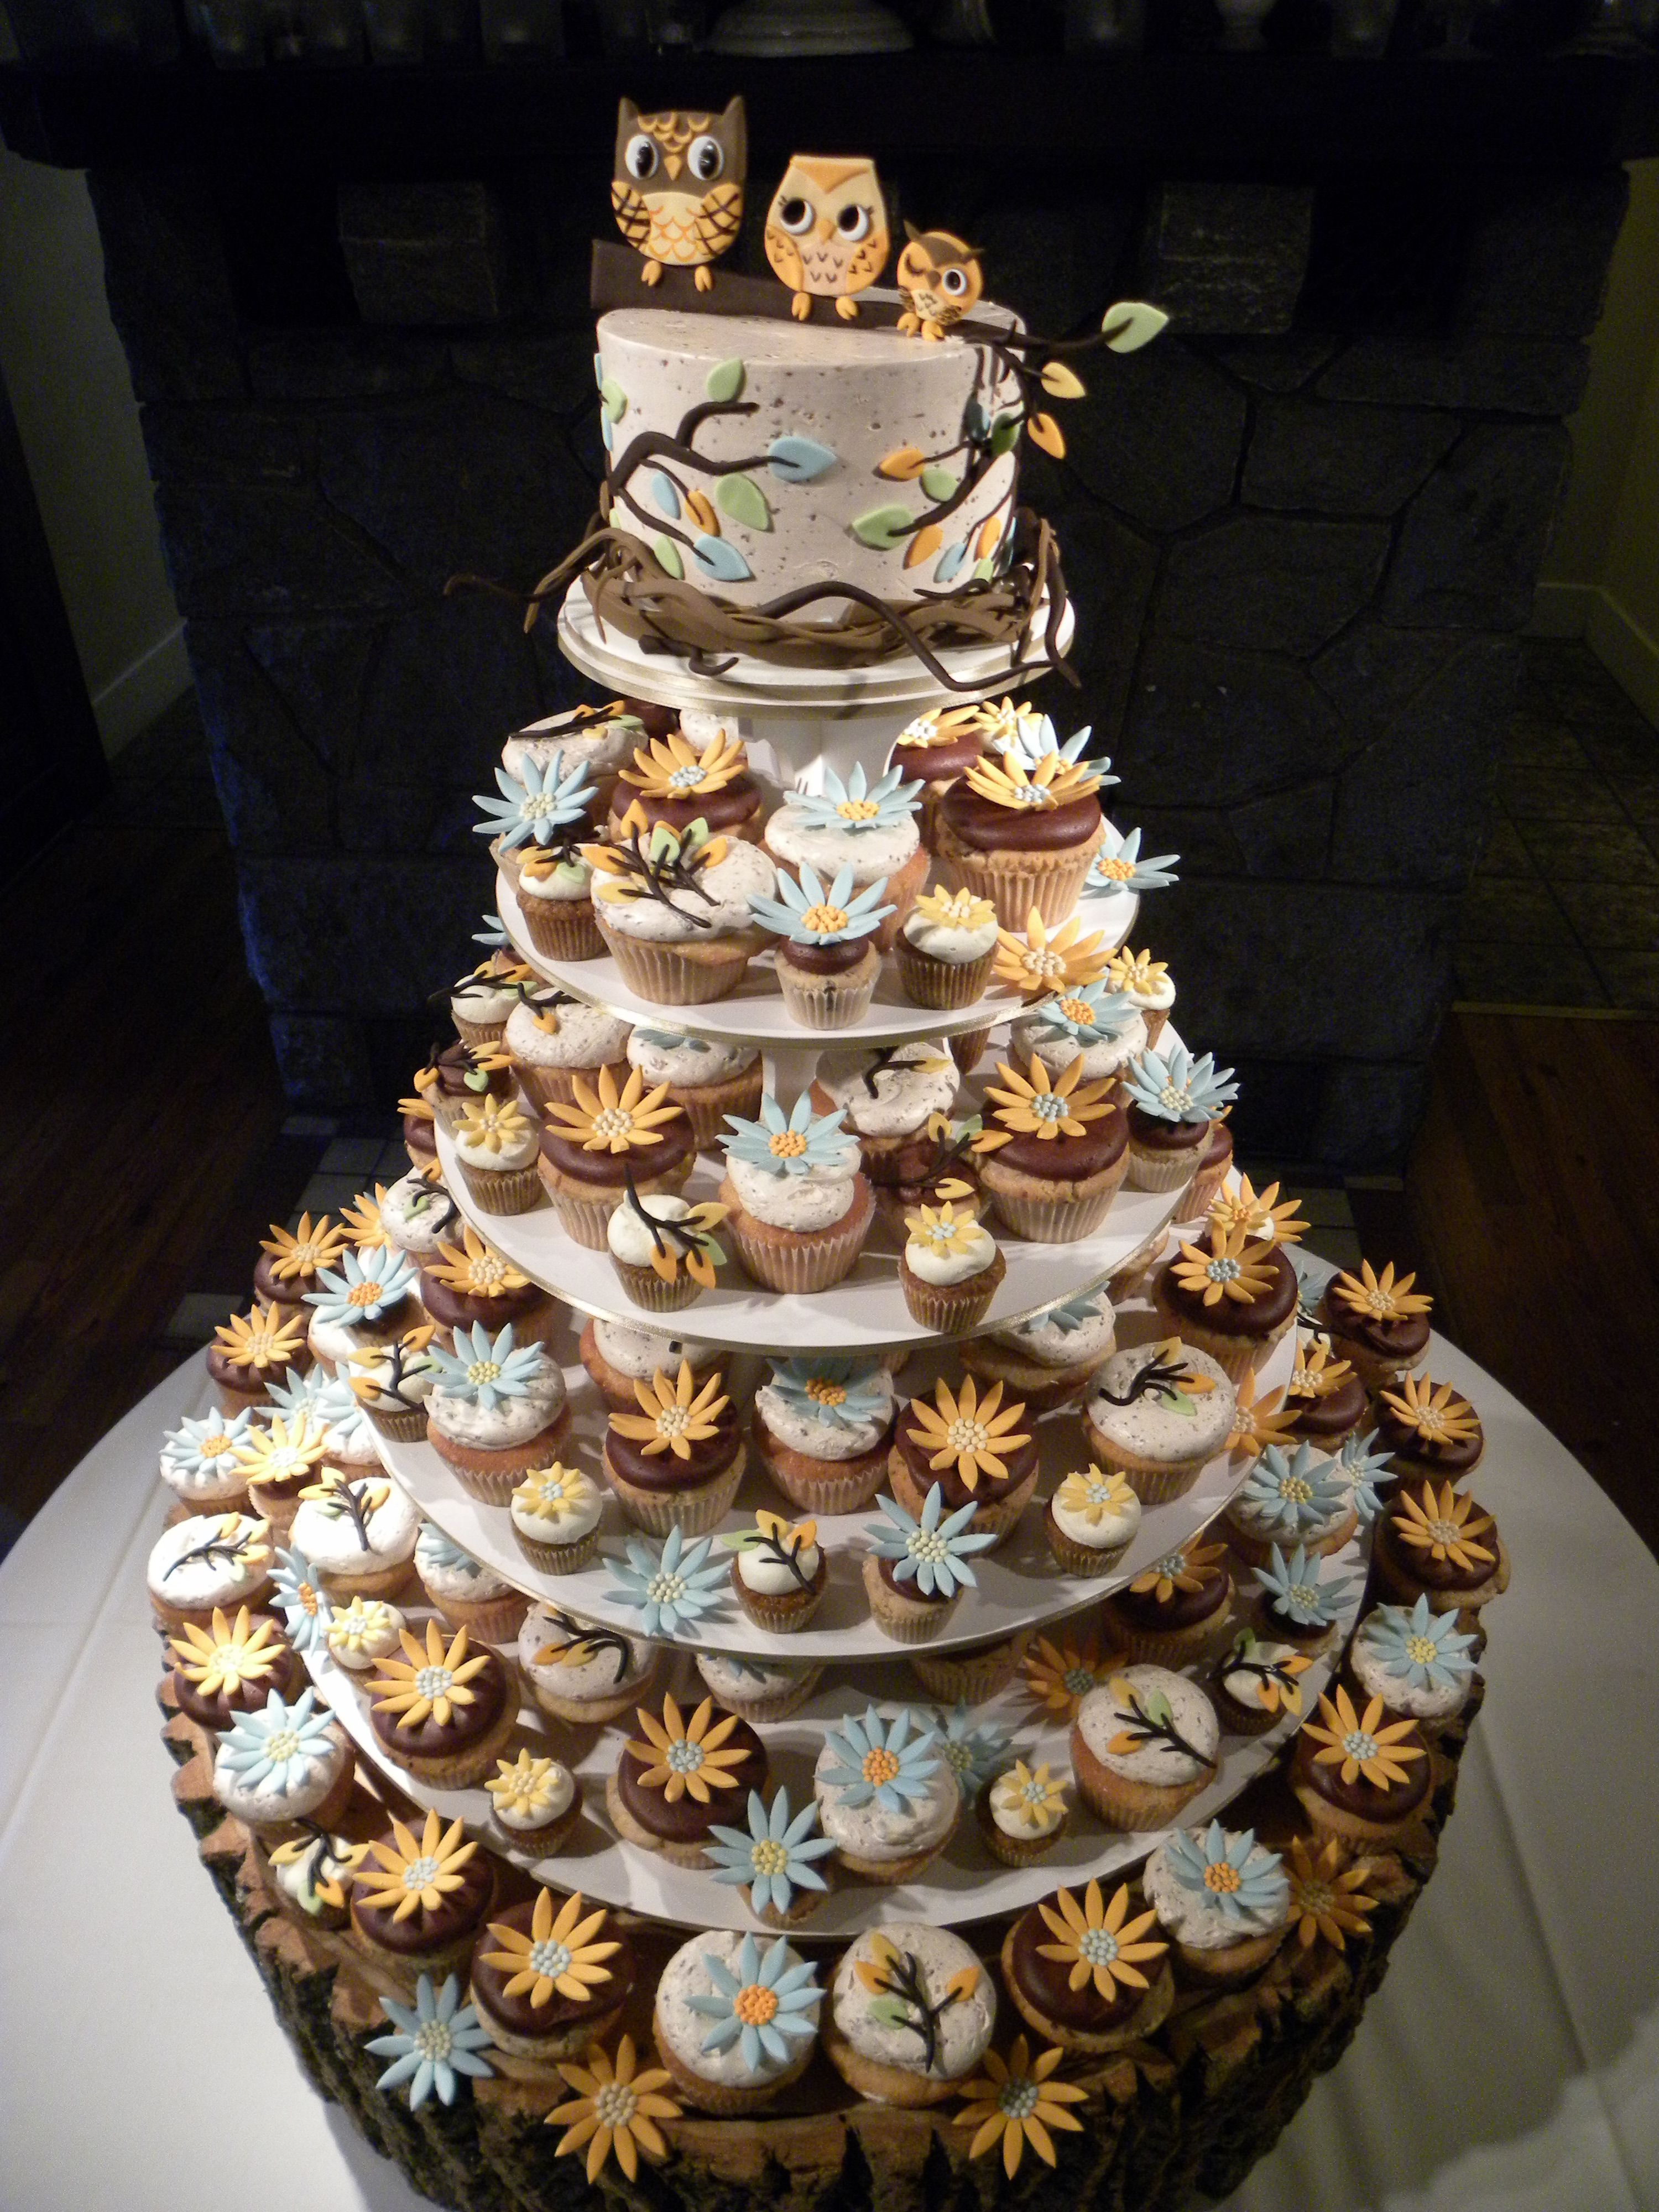 Oh My Goodness Look At The Cupcake Wedding Cake With The Owls On - Owl Wedding Cake